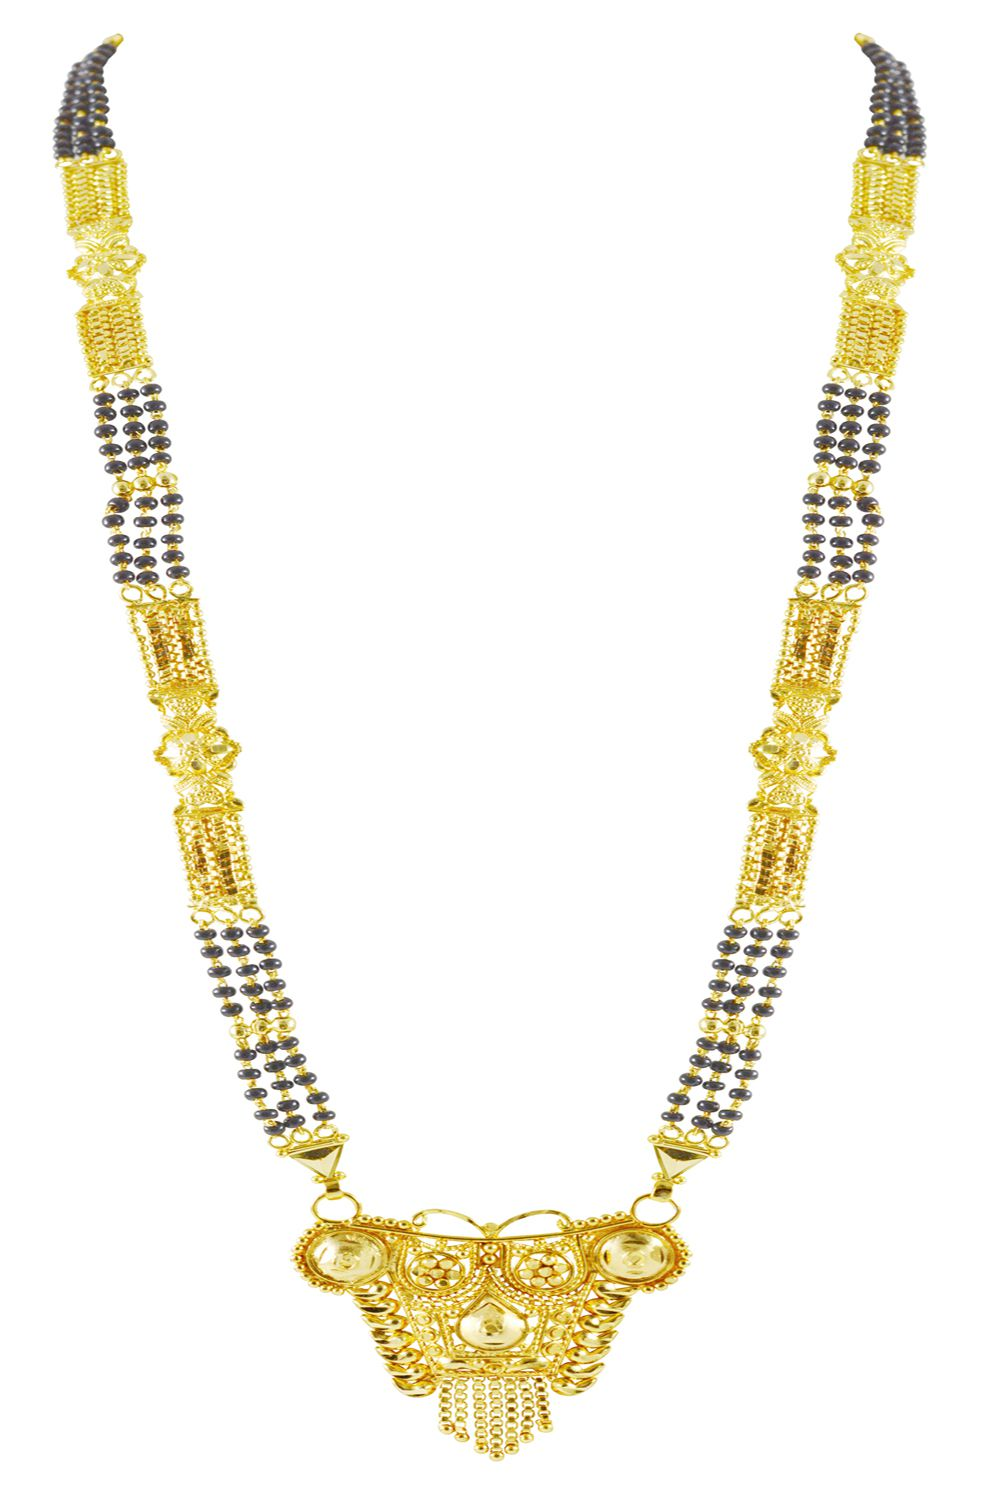 Rejewel Mangalsutra With Black and Gold Chain